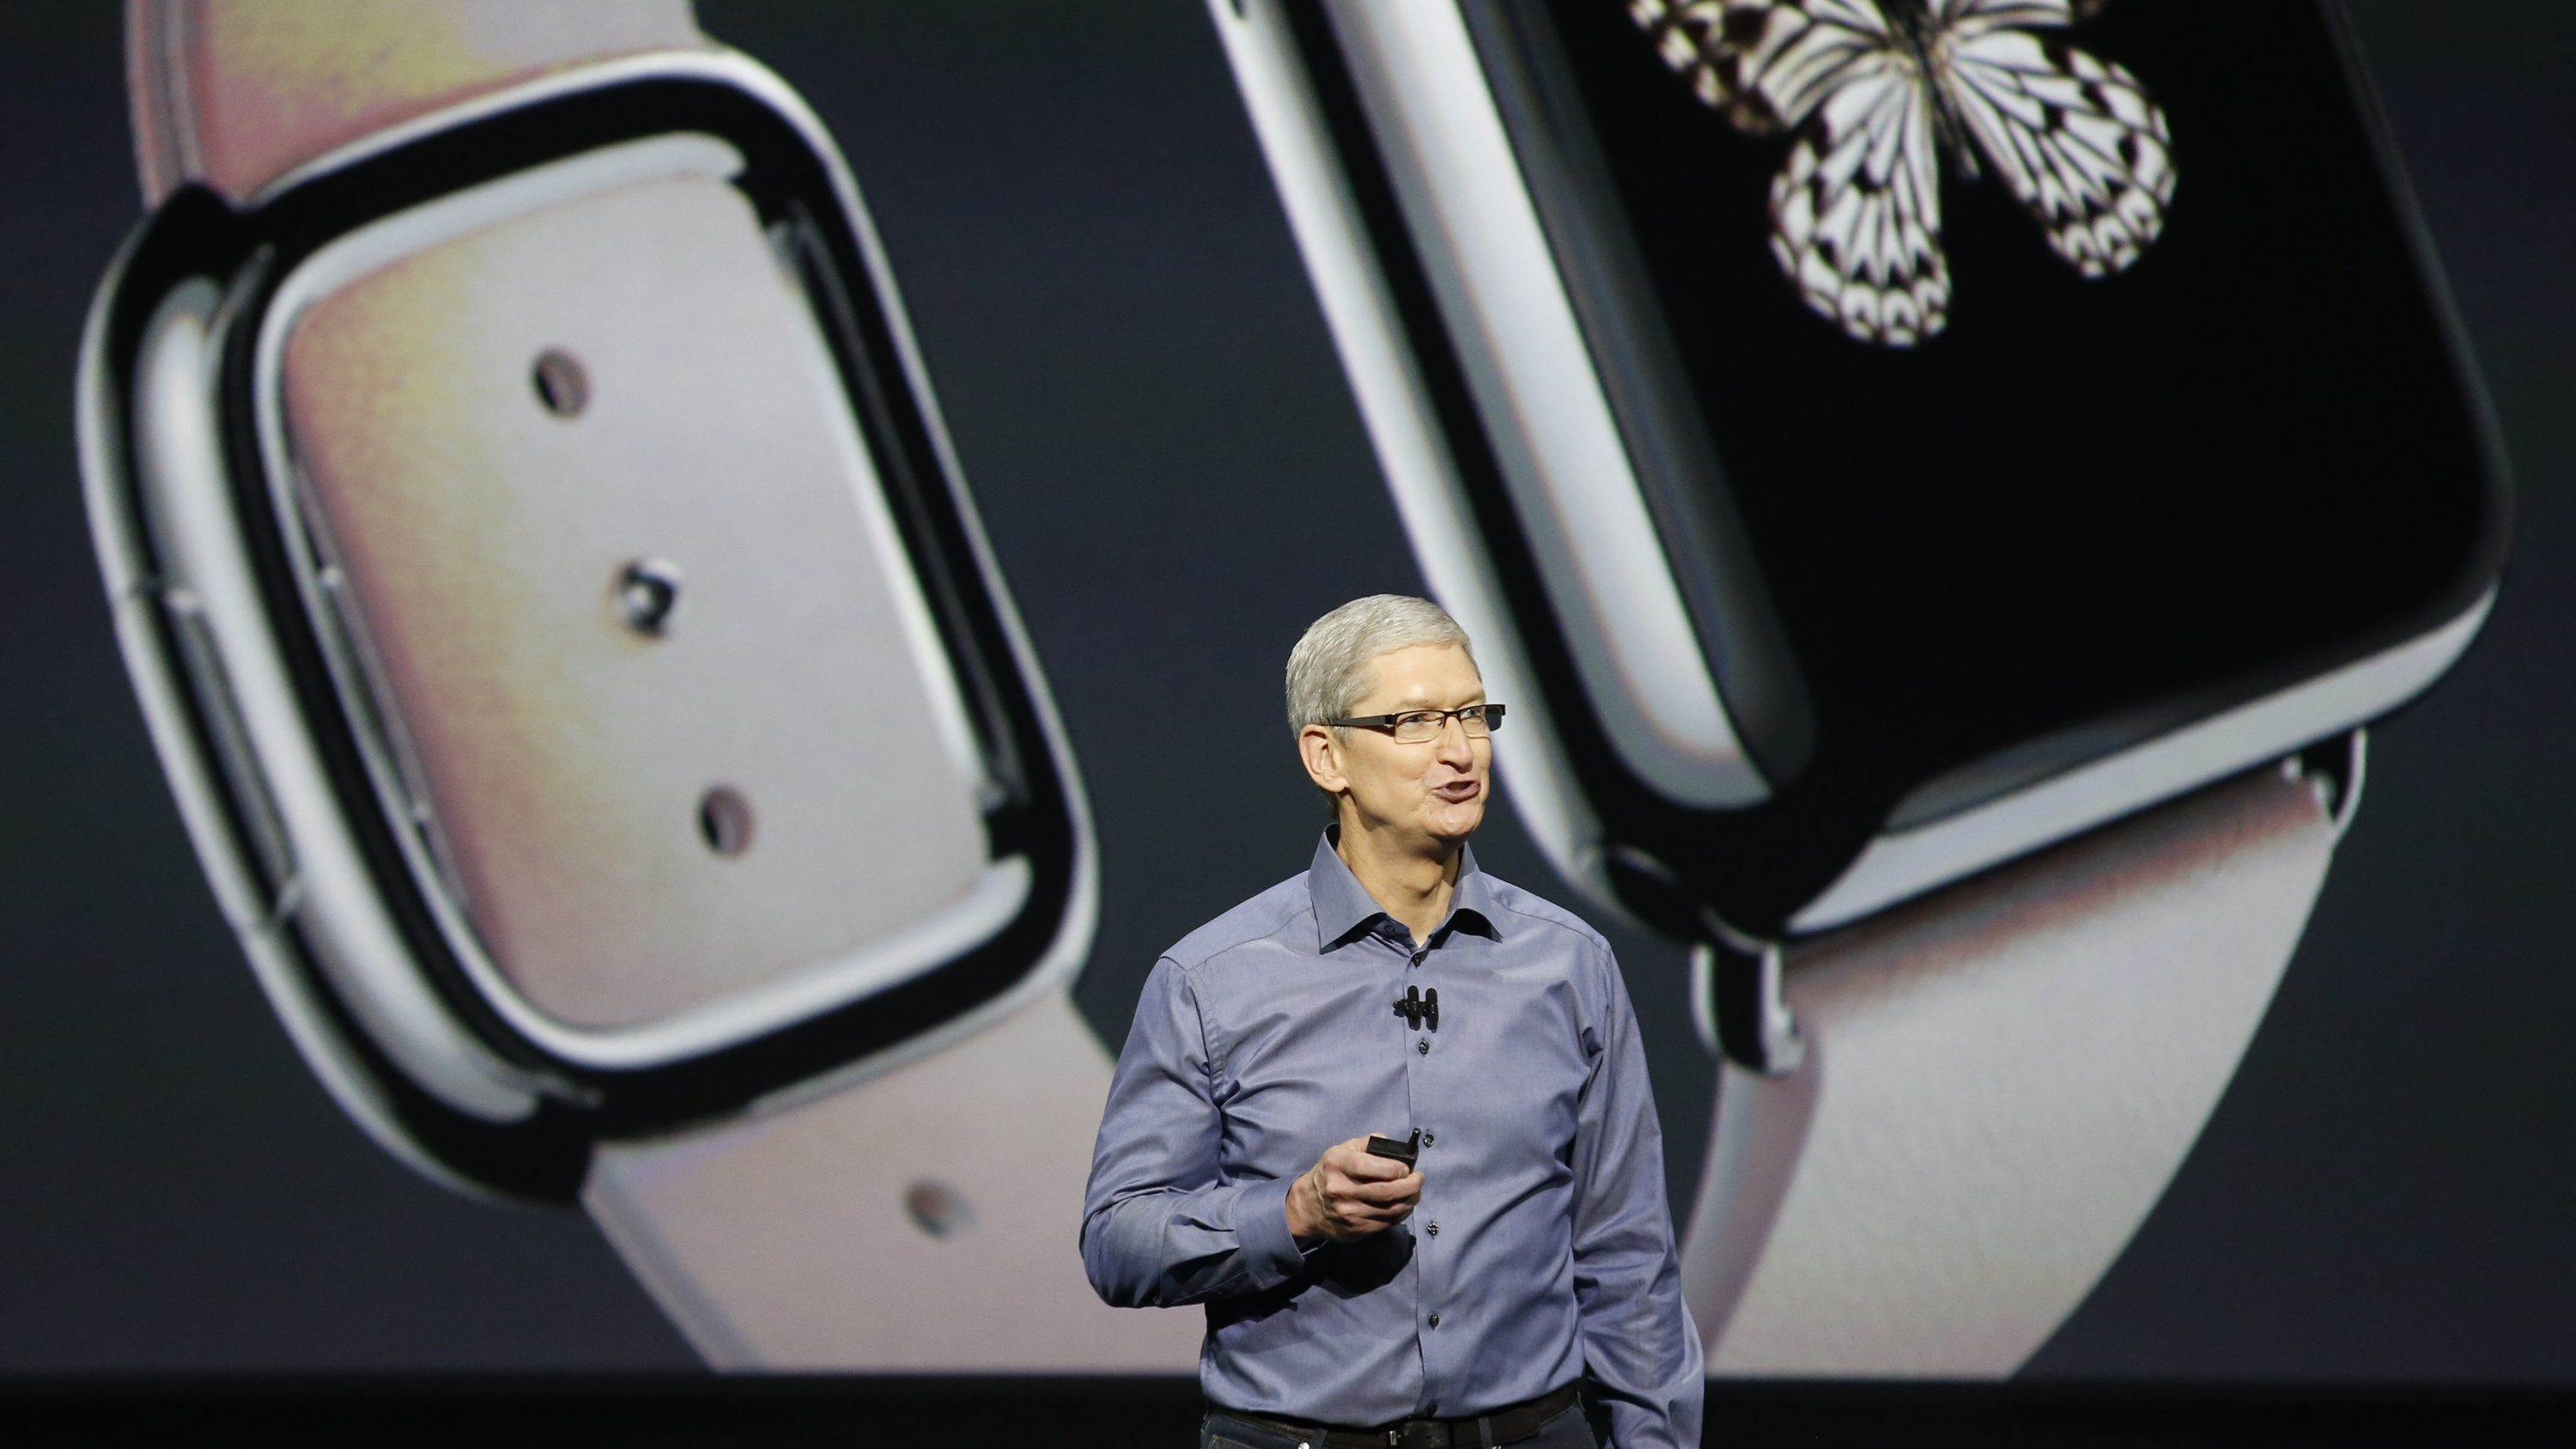 Apple CEO Tim Cook discusses the Apple Watch during an Apple media event in San Francisco, California